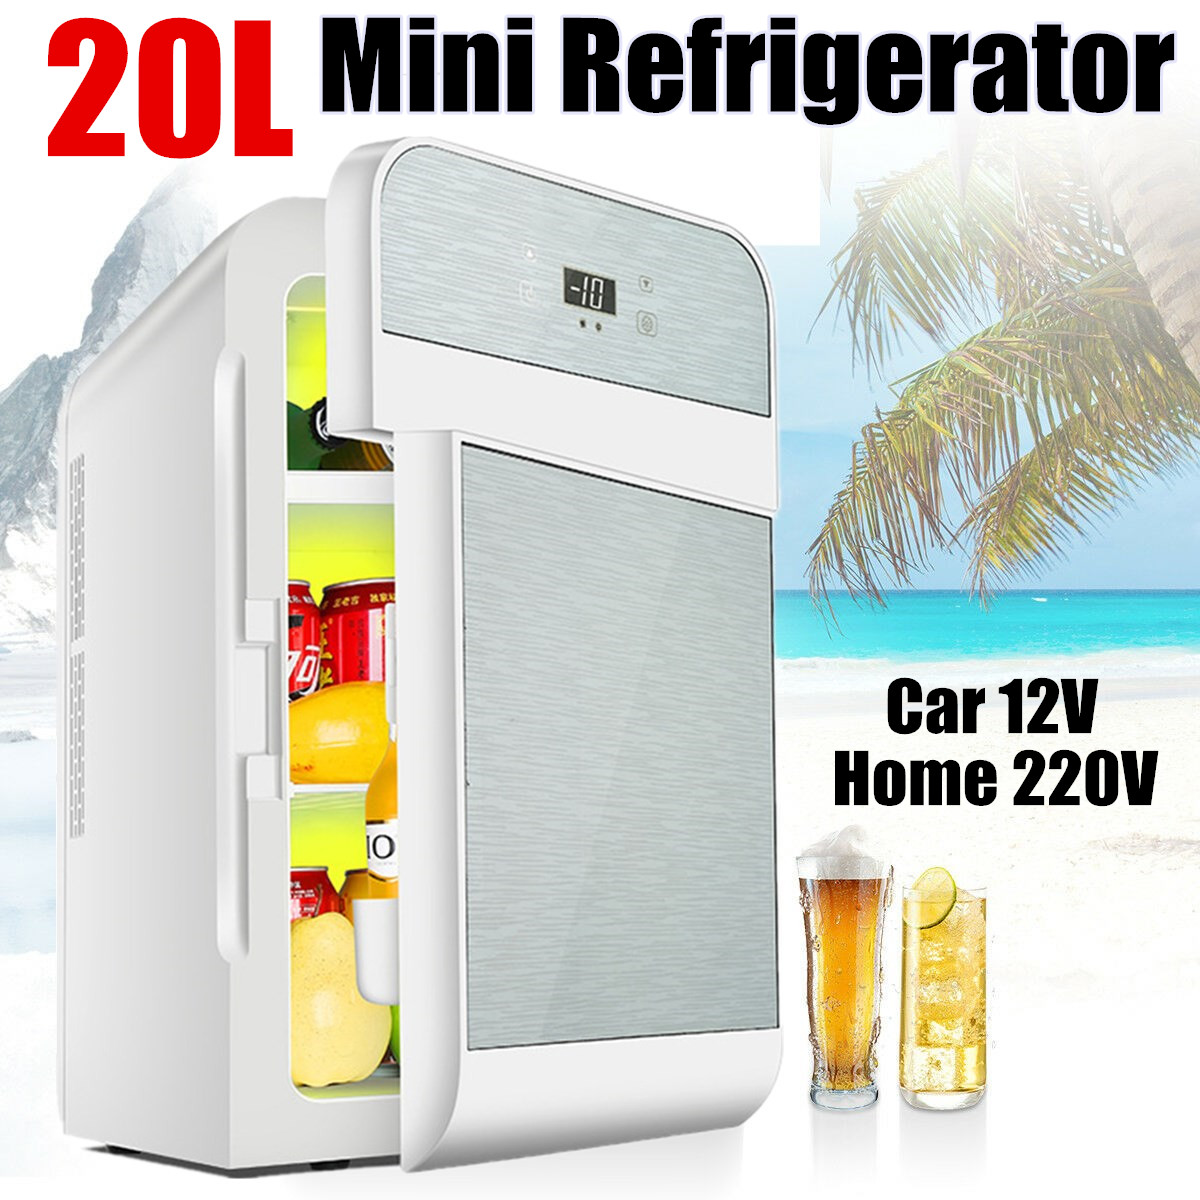 20L Refrigerator Car Mini Refrigerator Single-core Dual-core Digital Display Camping Home Dormitory Dual-use Fridge 12V/220V